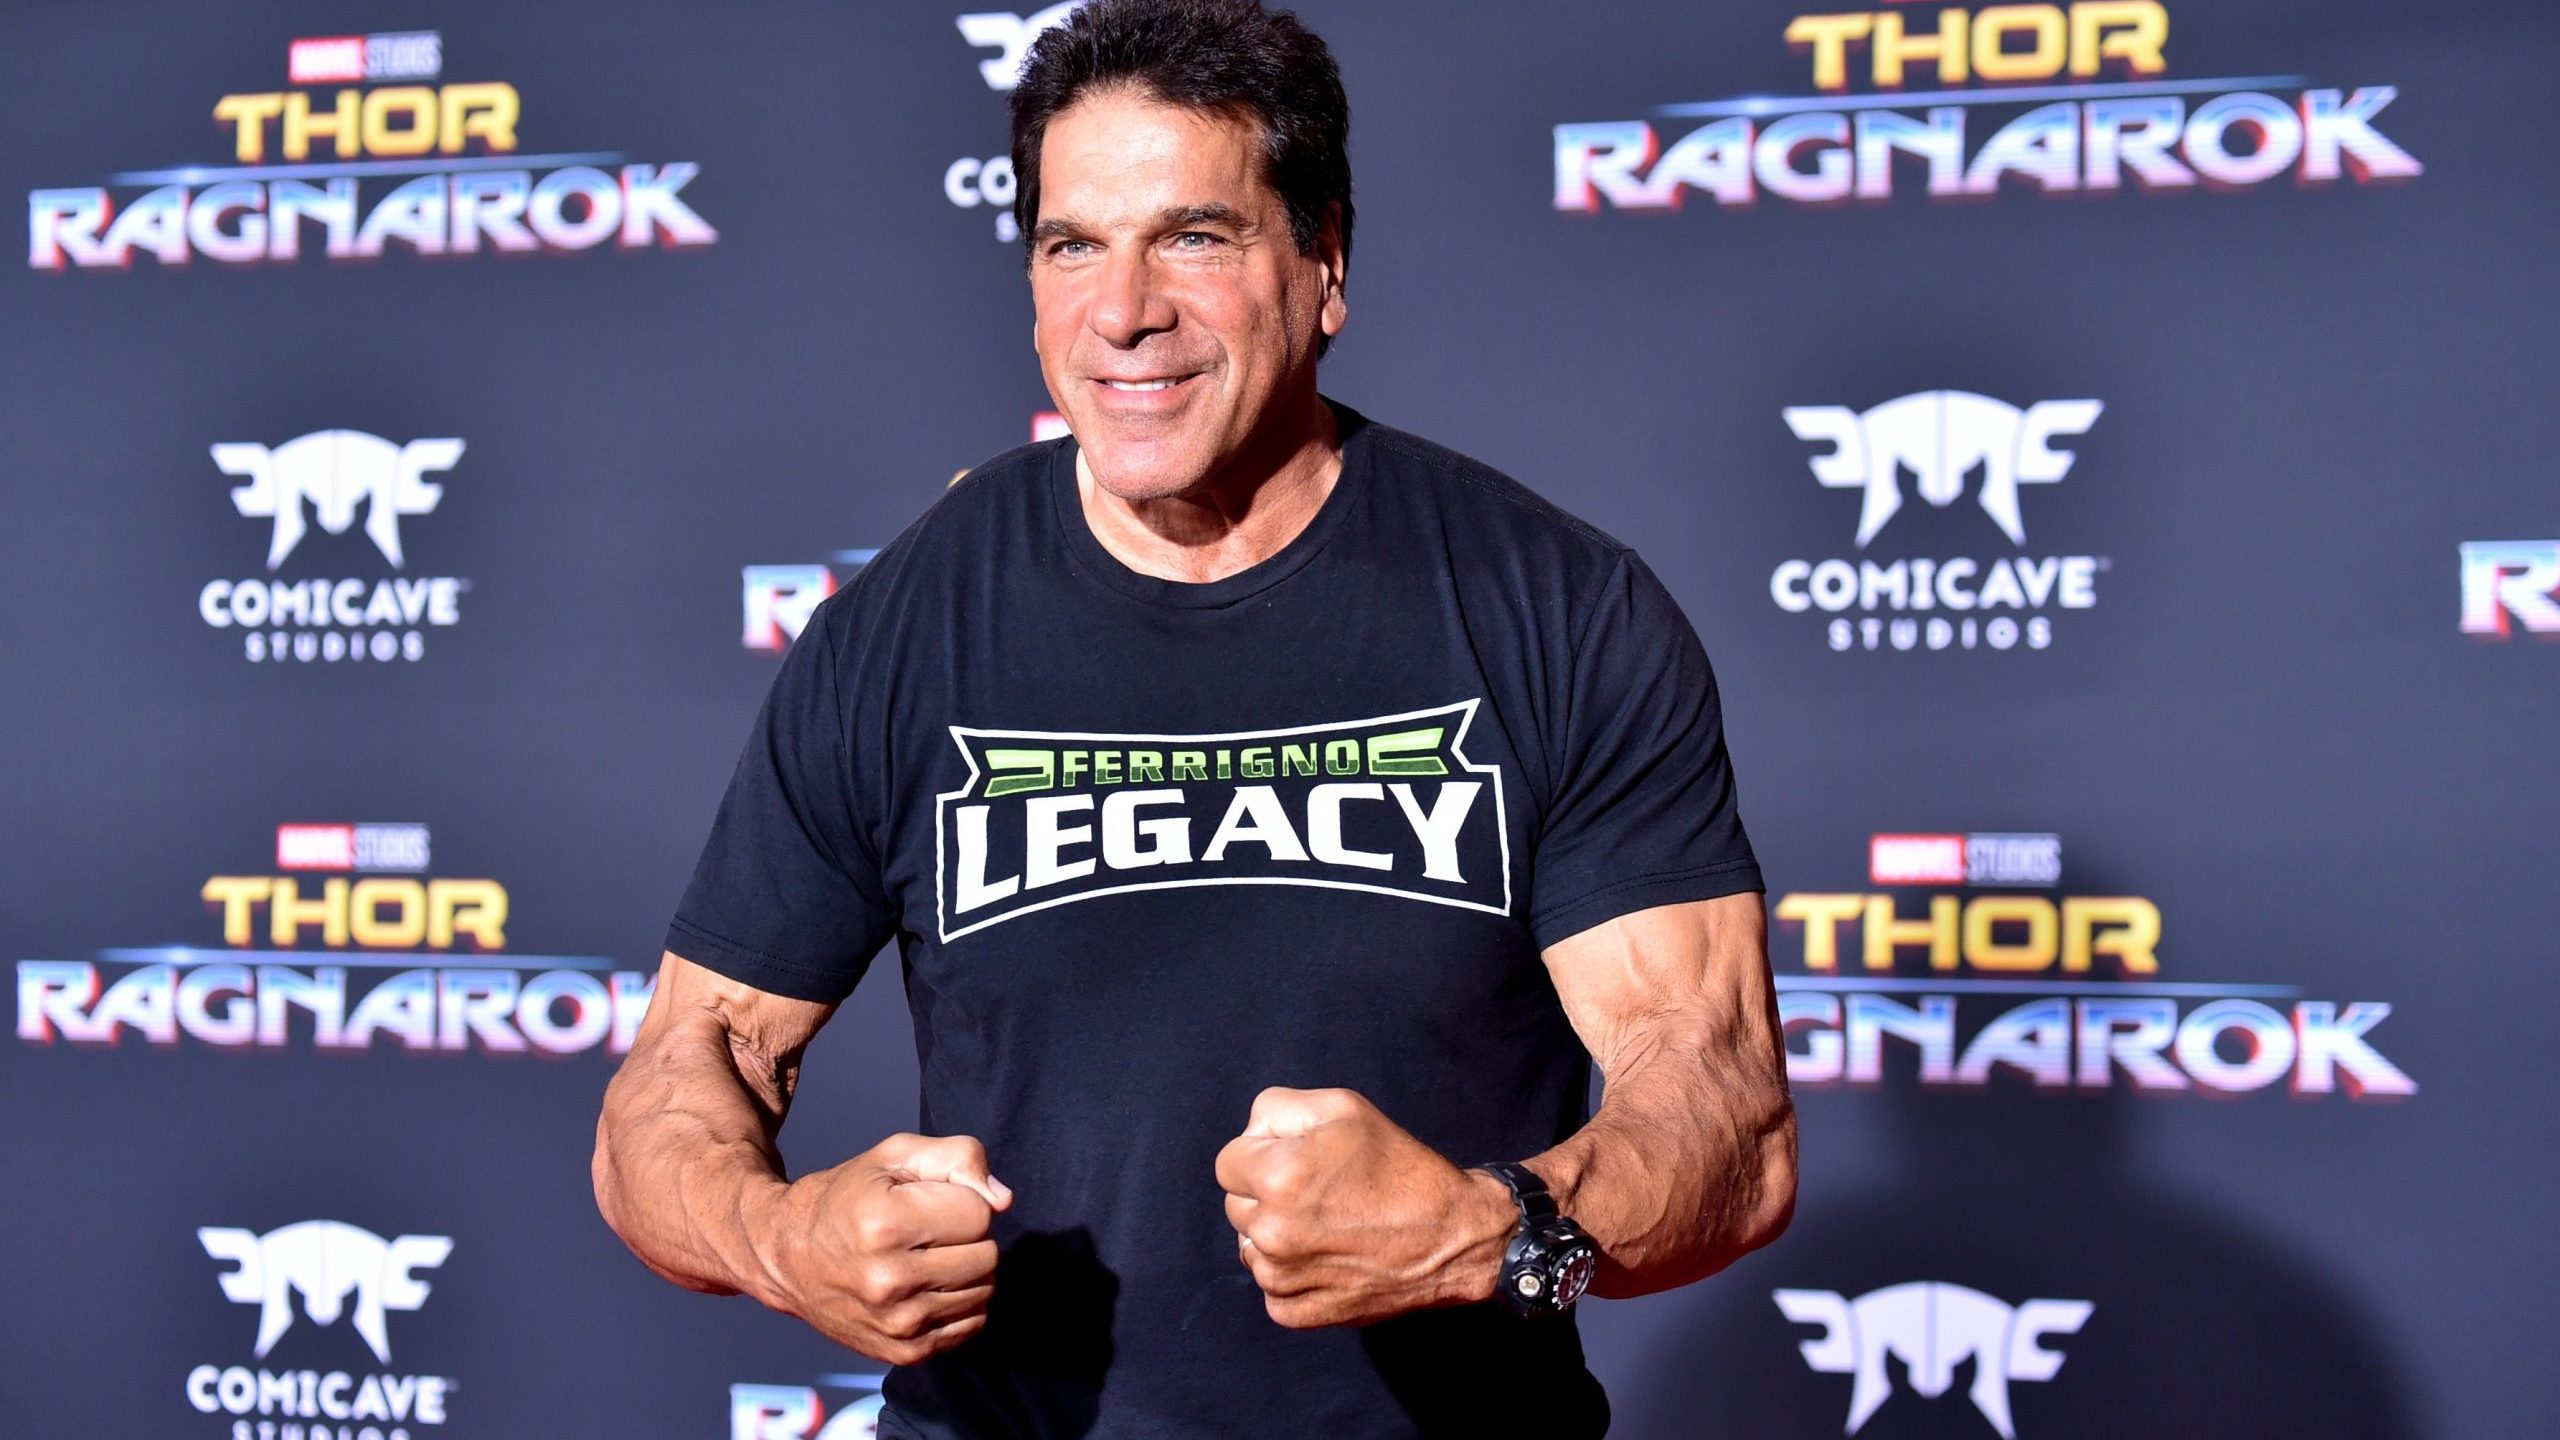 """Actor Lou Ferrigno arrives at the Los Angeles premiere """"Thor: Ragnarok"""" on Oct. 10, 2017. (Credit: Frazer Harrison / Getty Images)"""